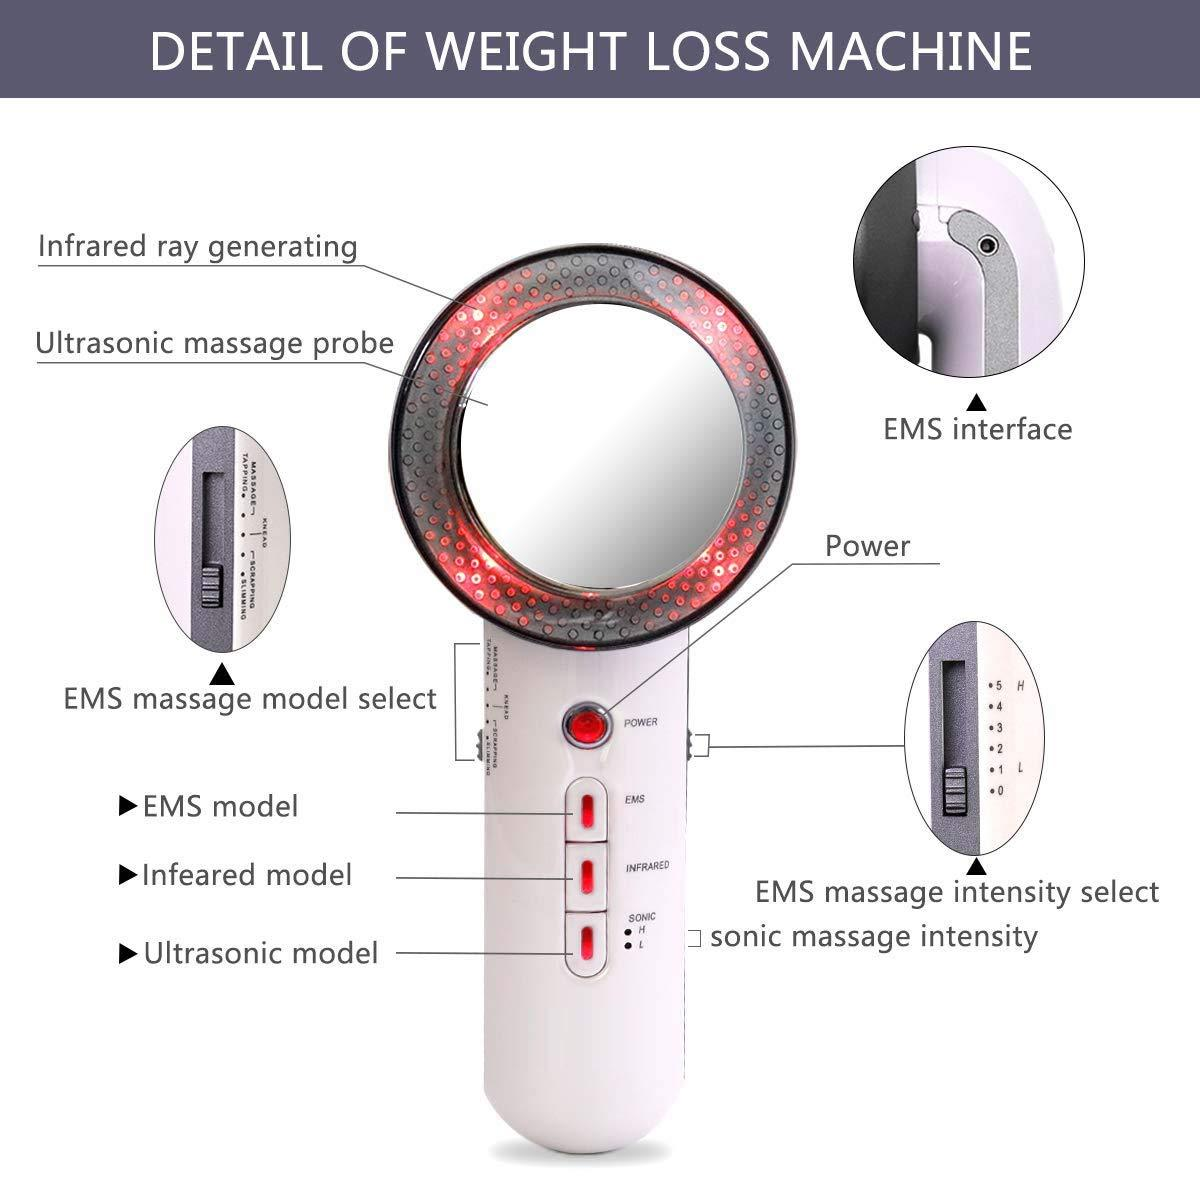 Face Lifting 3 in 1 EMS Infrared Ultrasonic Body Massager Device